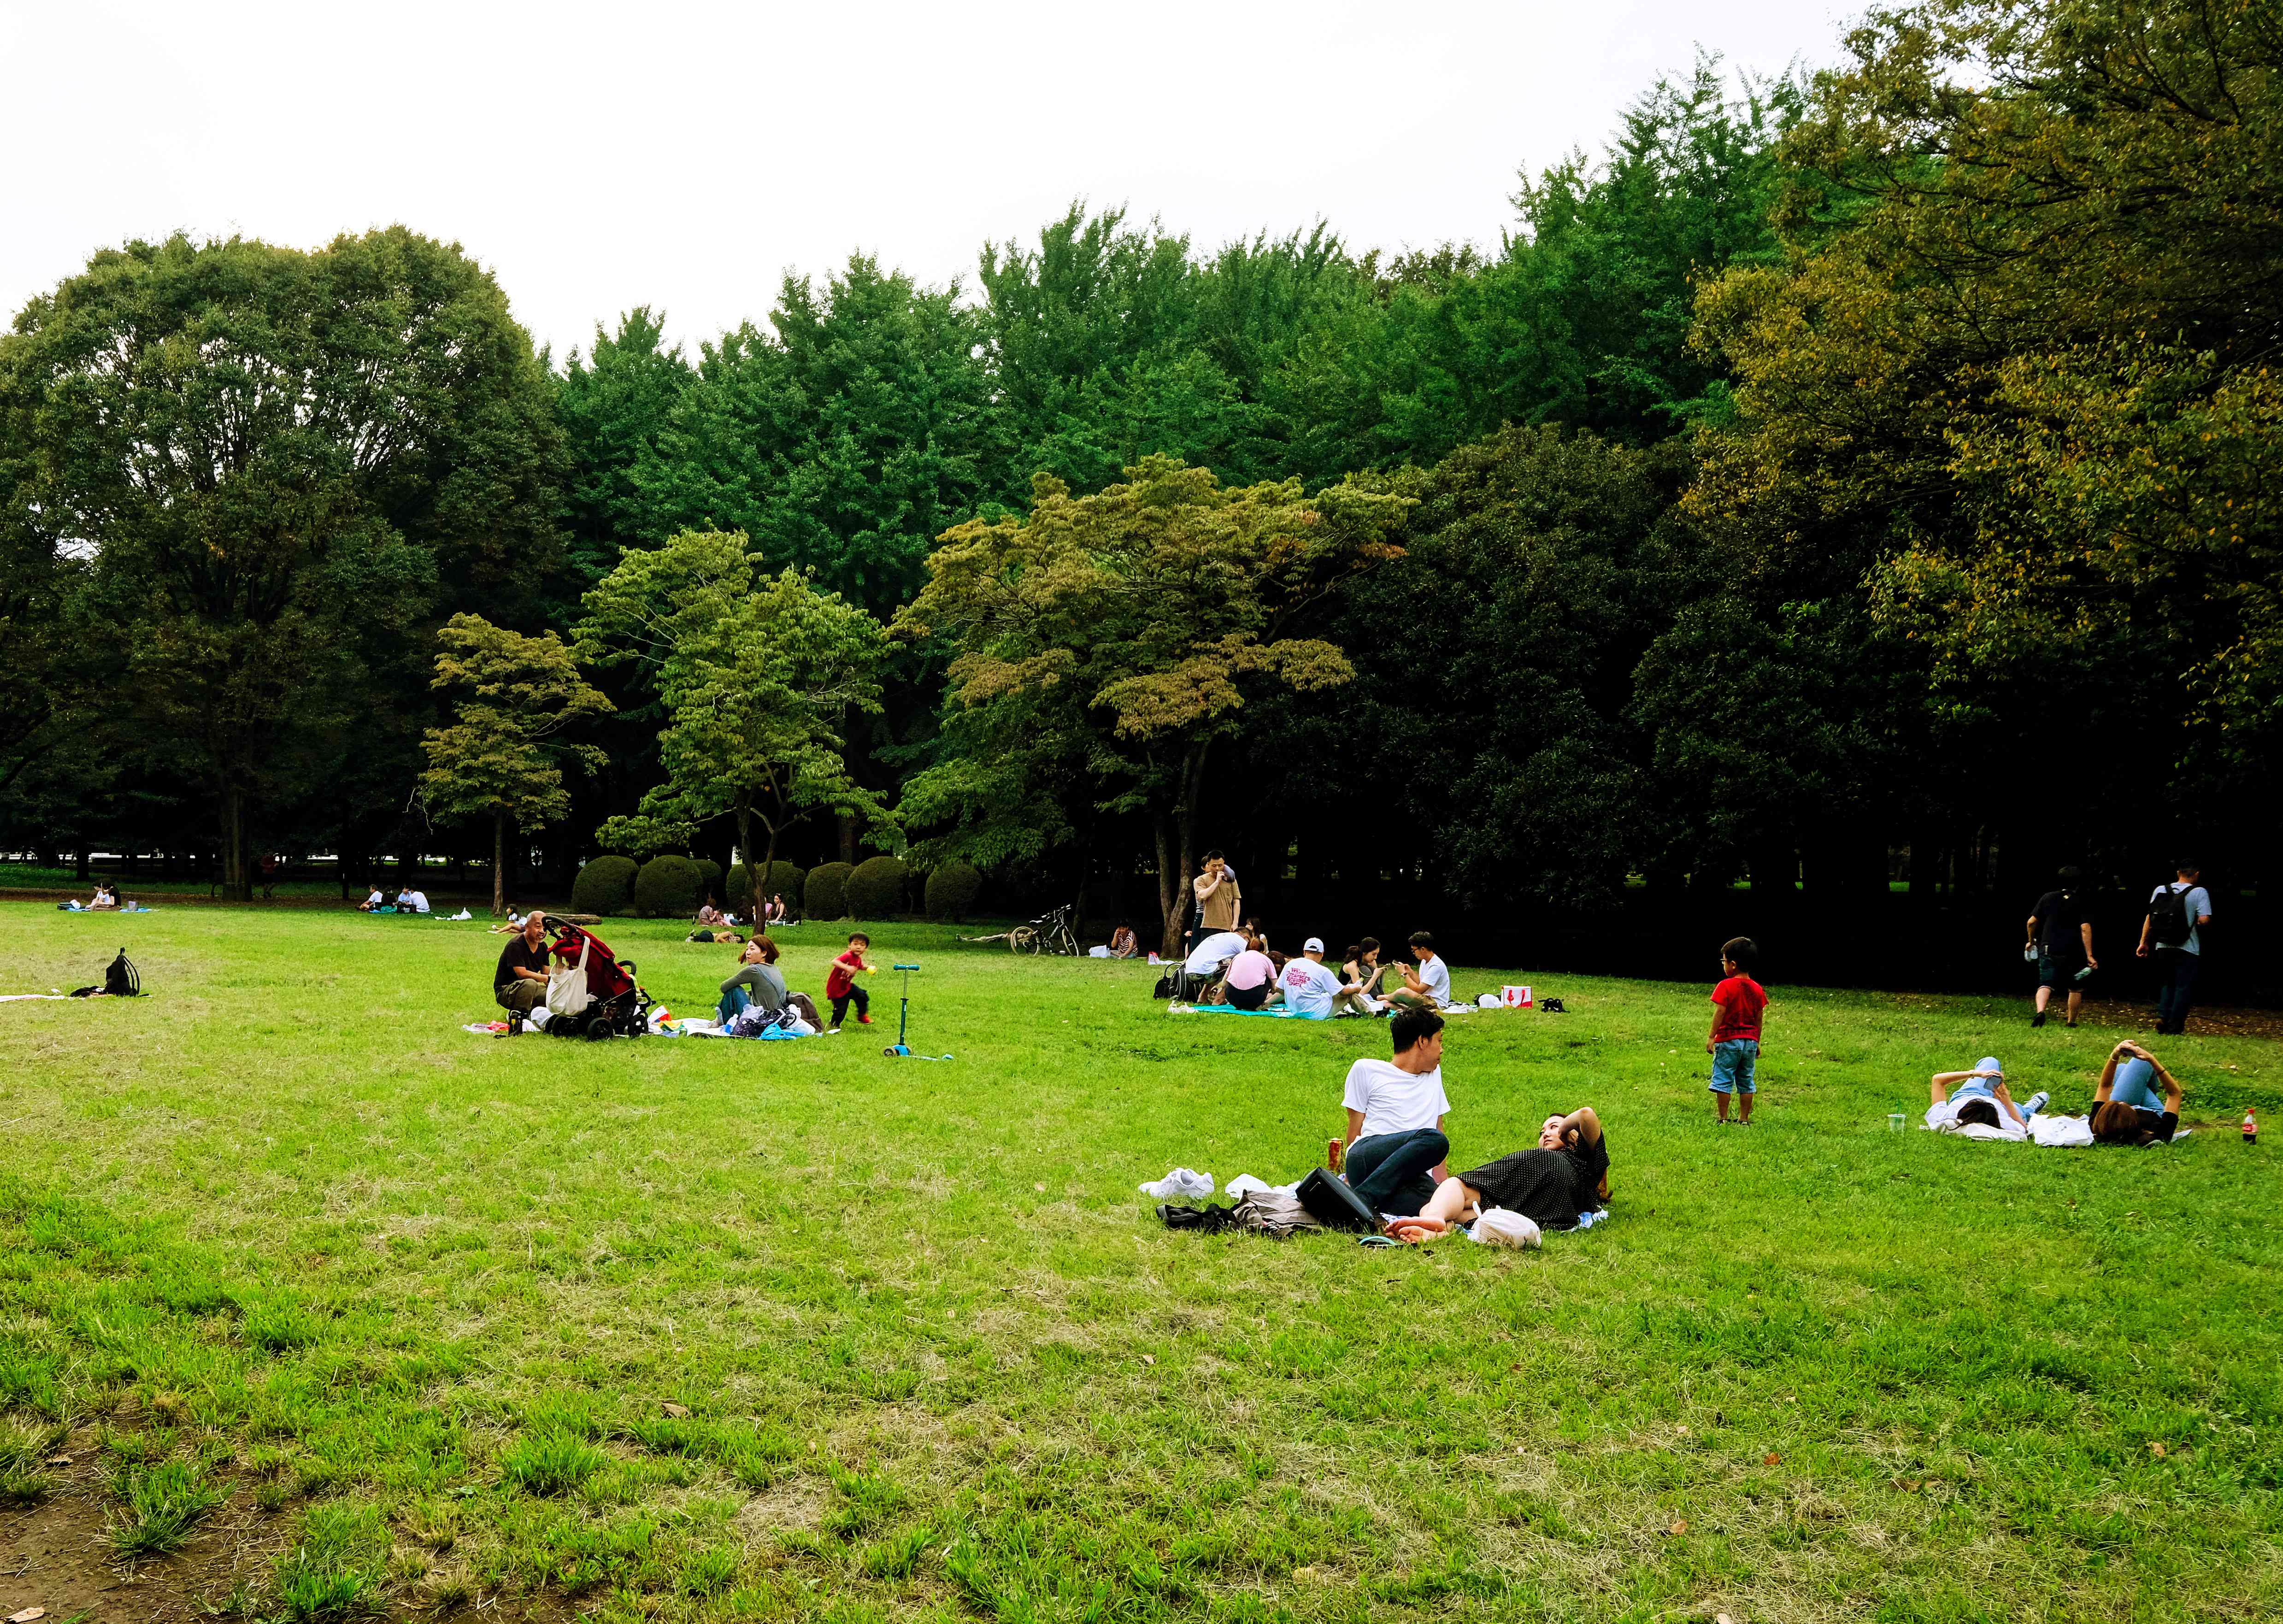 People laying on the lawn in Yoyogi Park